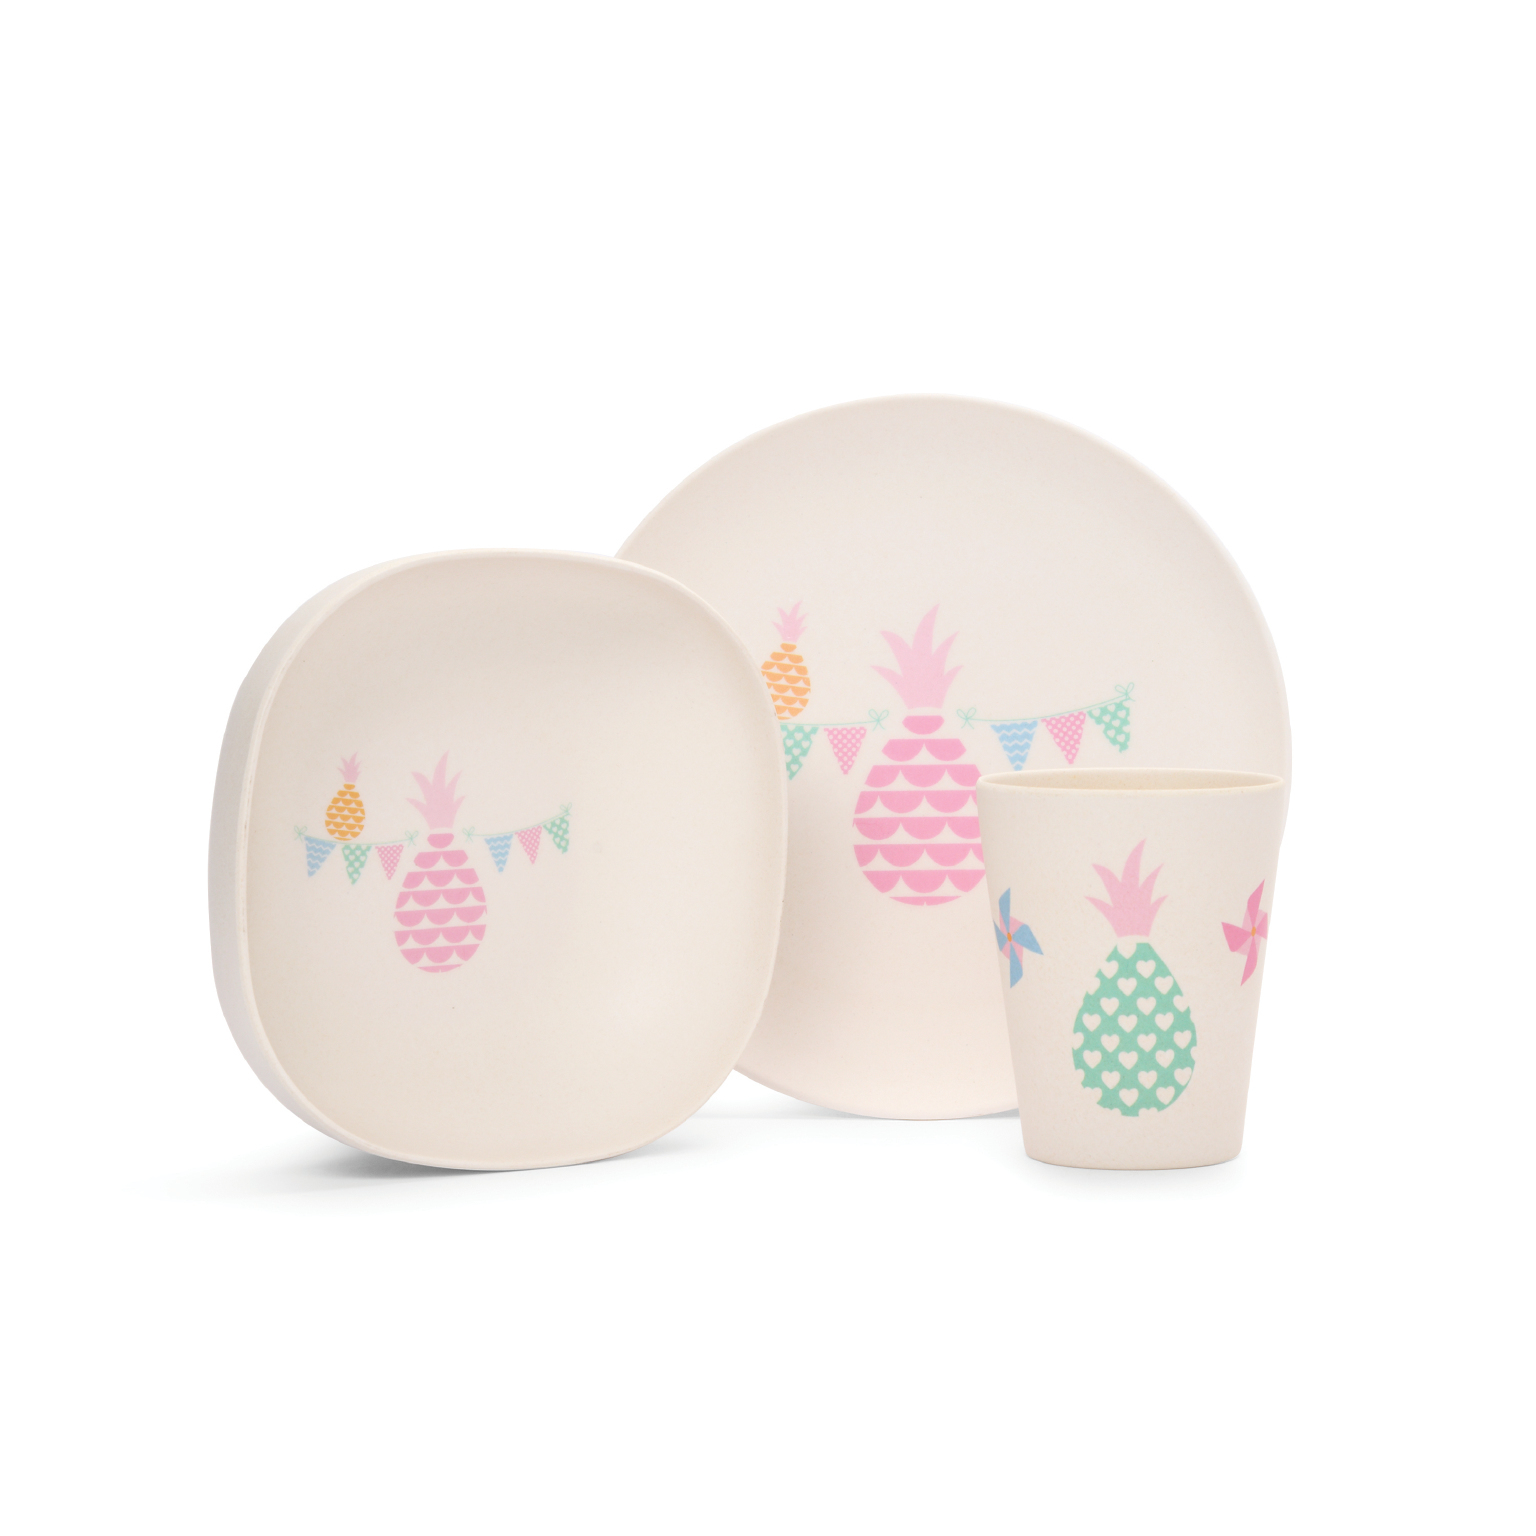 Pineapple Bunting Bamboo Meal Set with Cutlery image